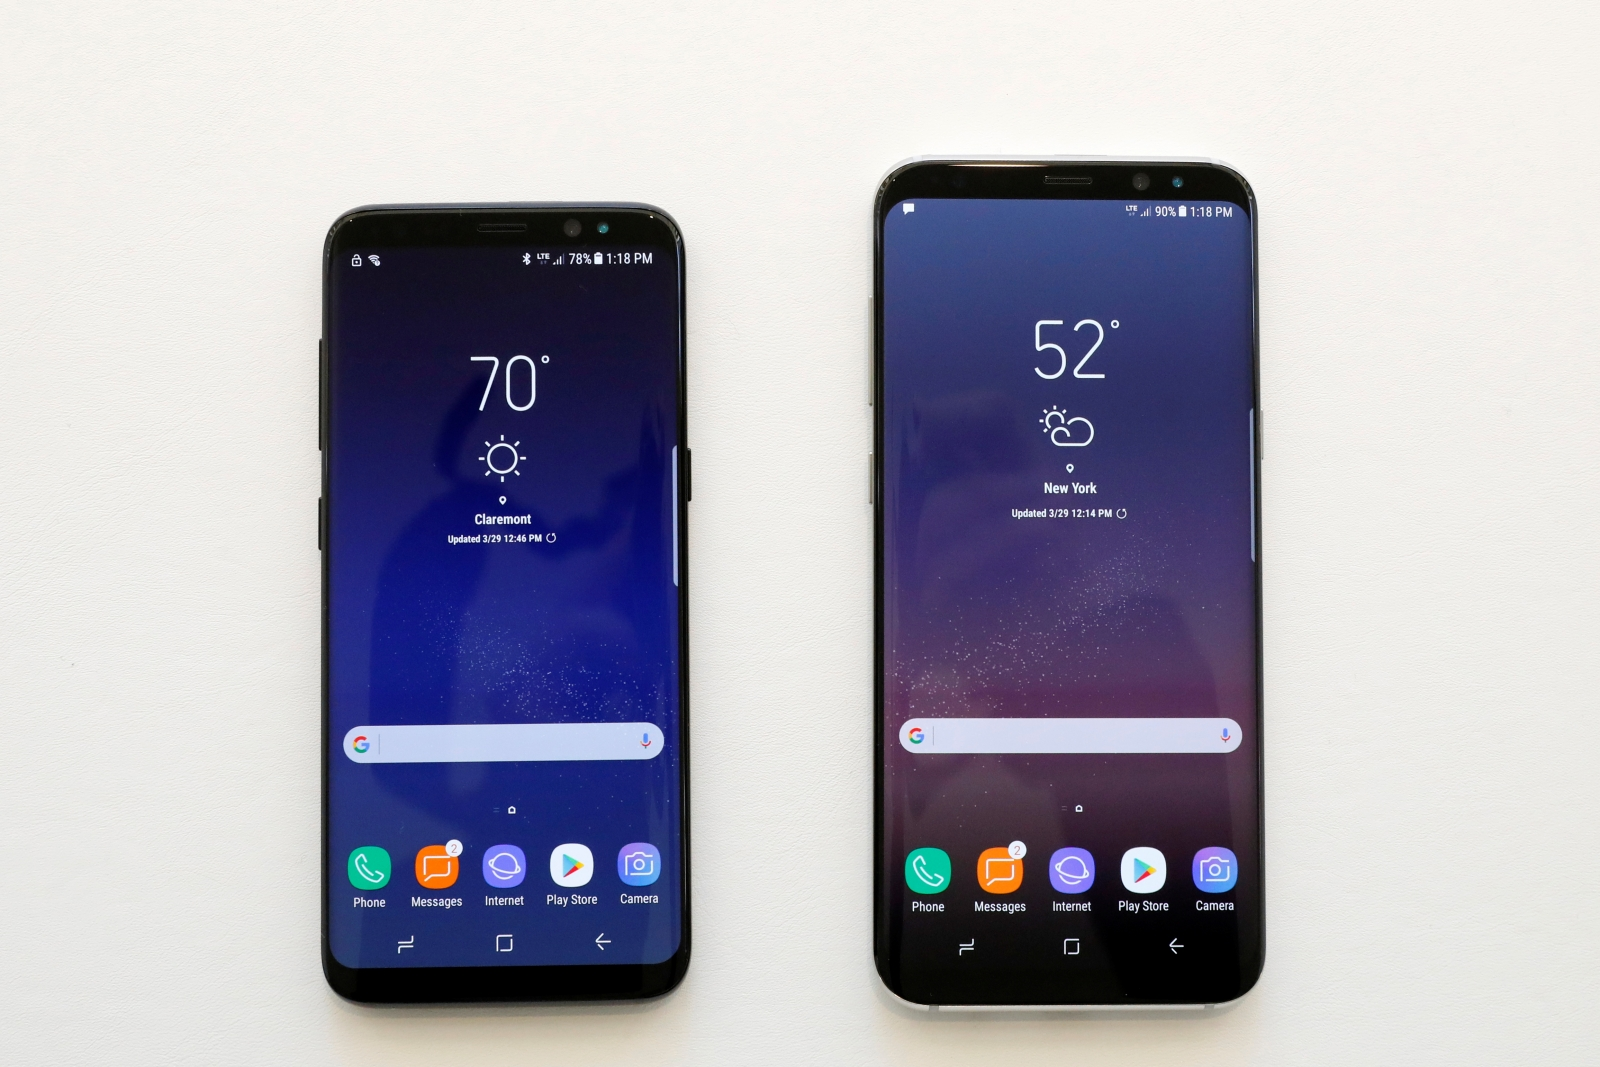 Samsung Galaxy S8 and S8 Plus